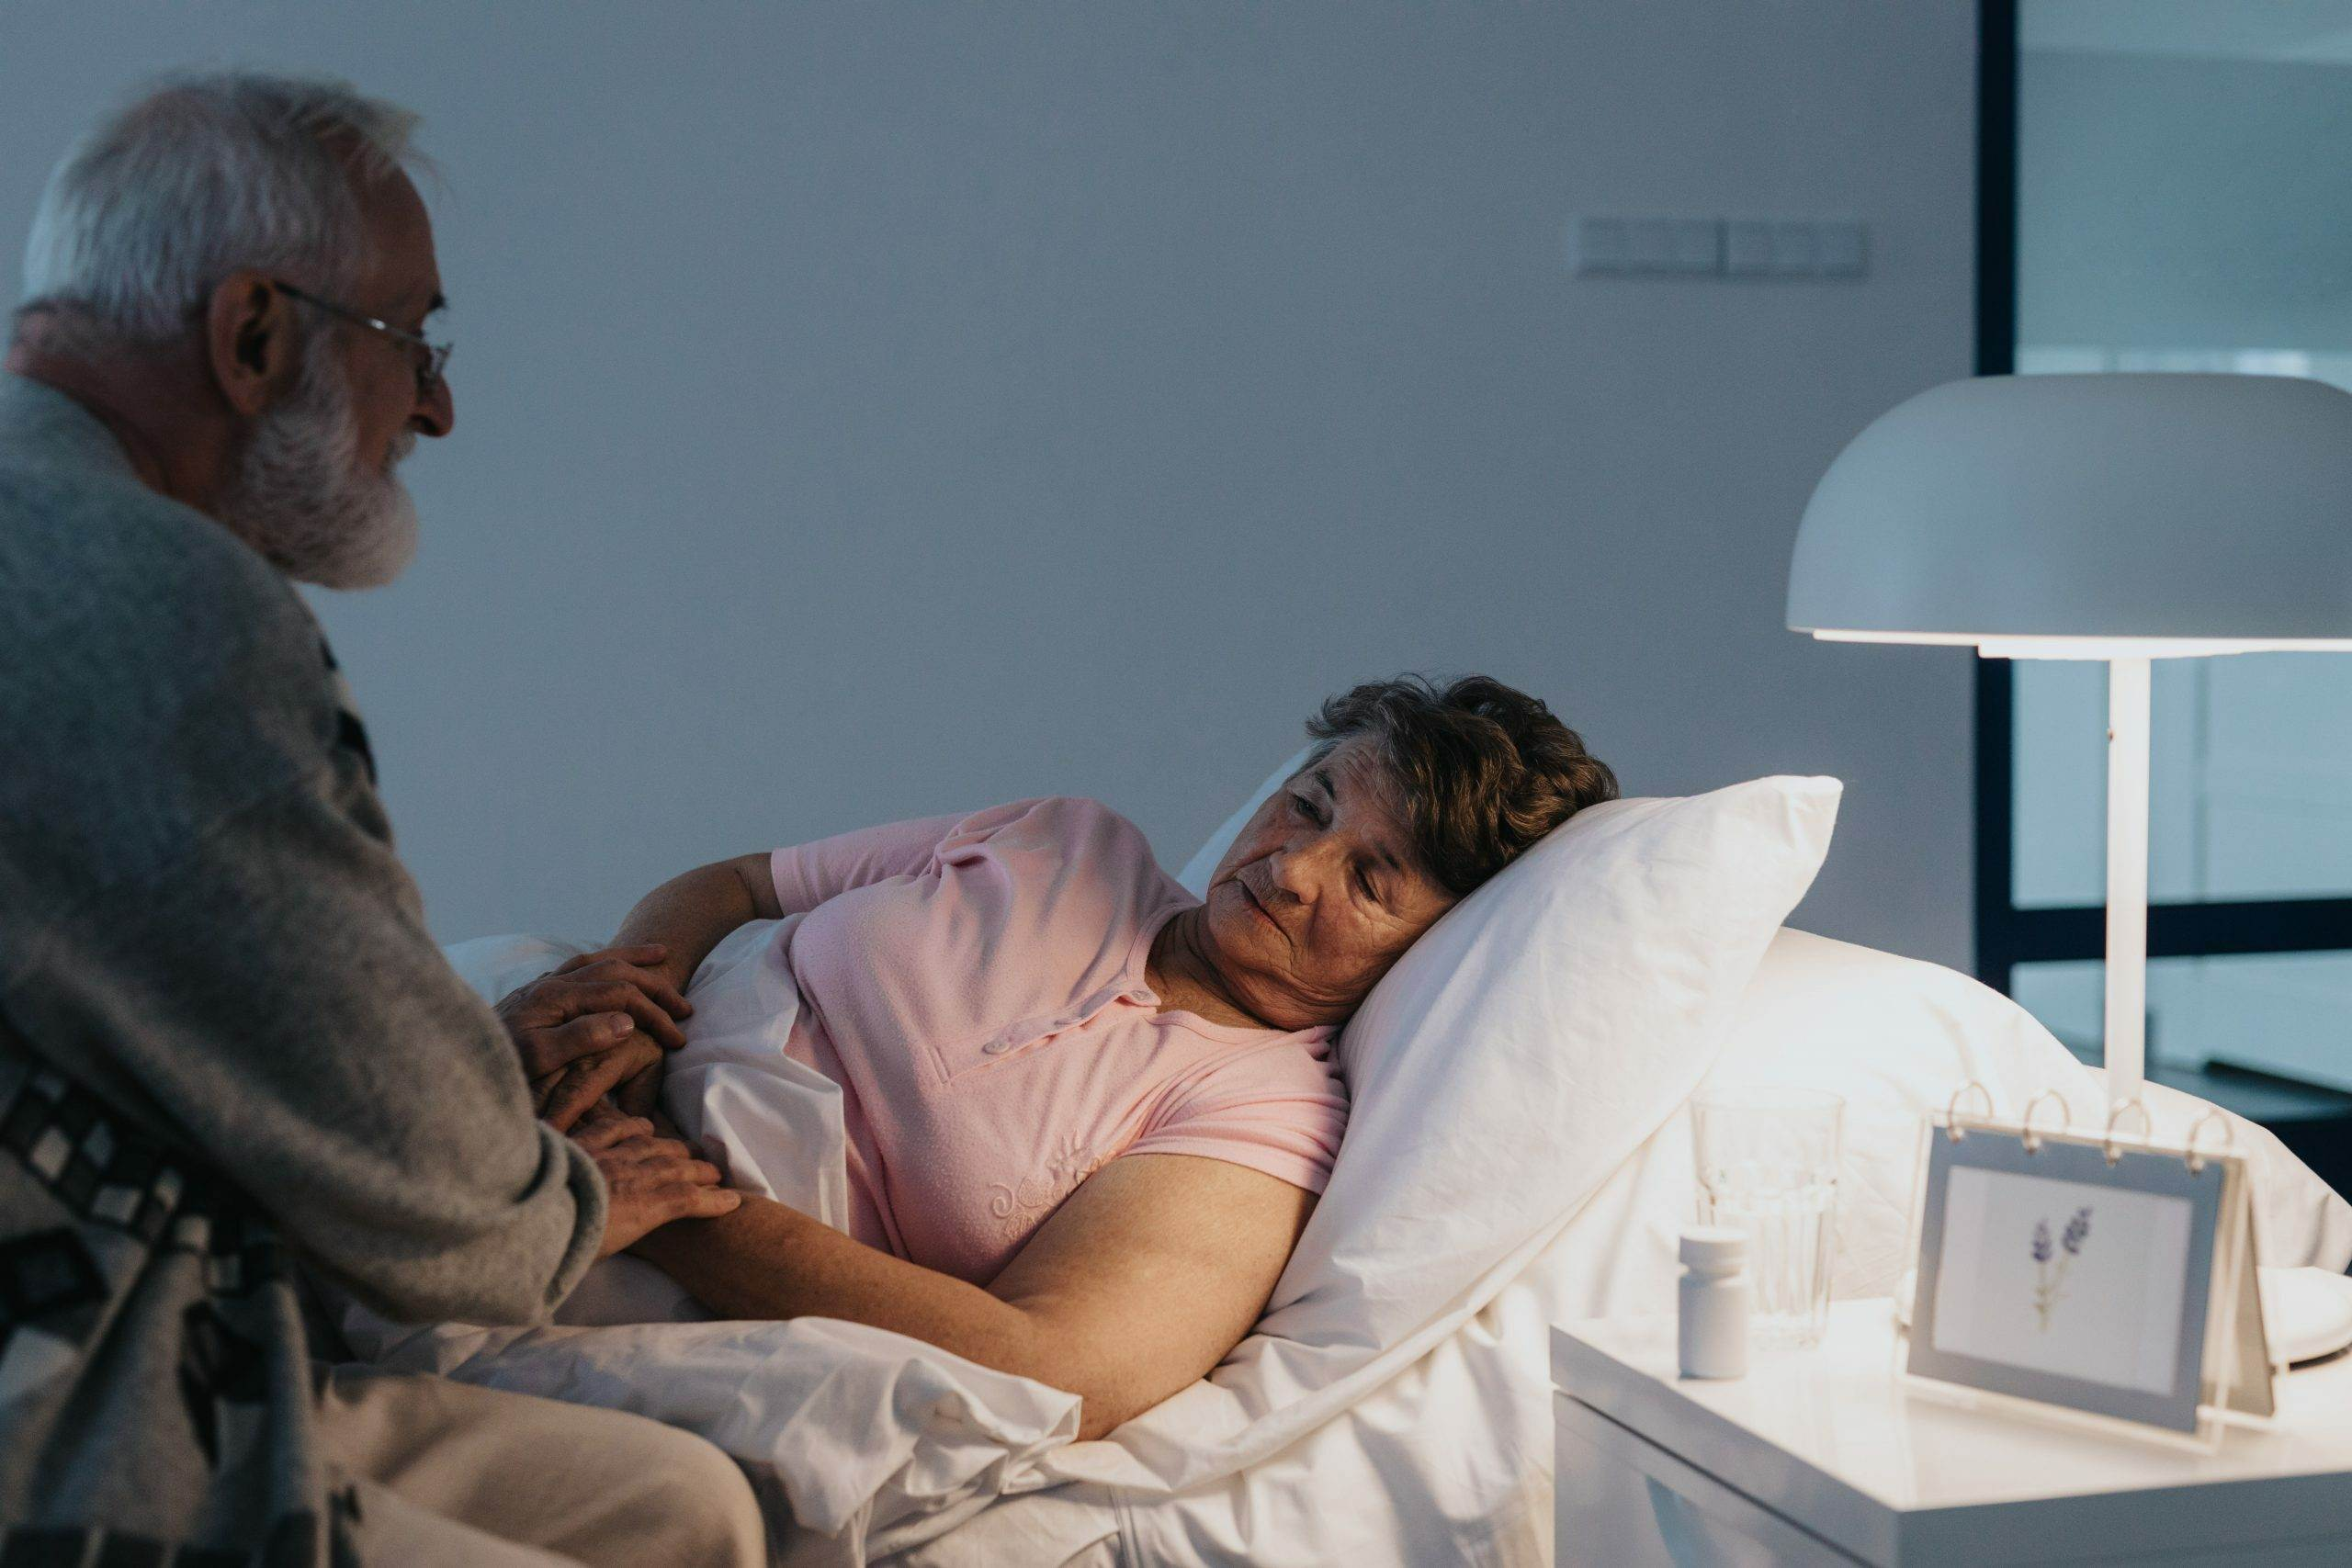 A dying woman is seen thinking about what to do after death with her partner